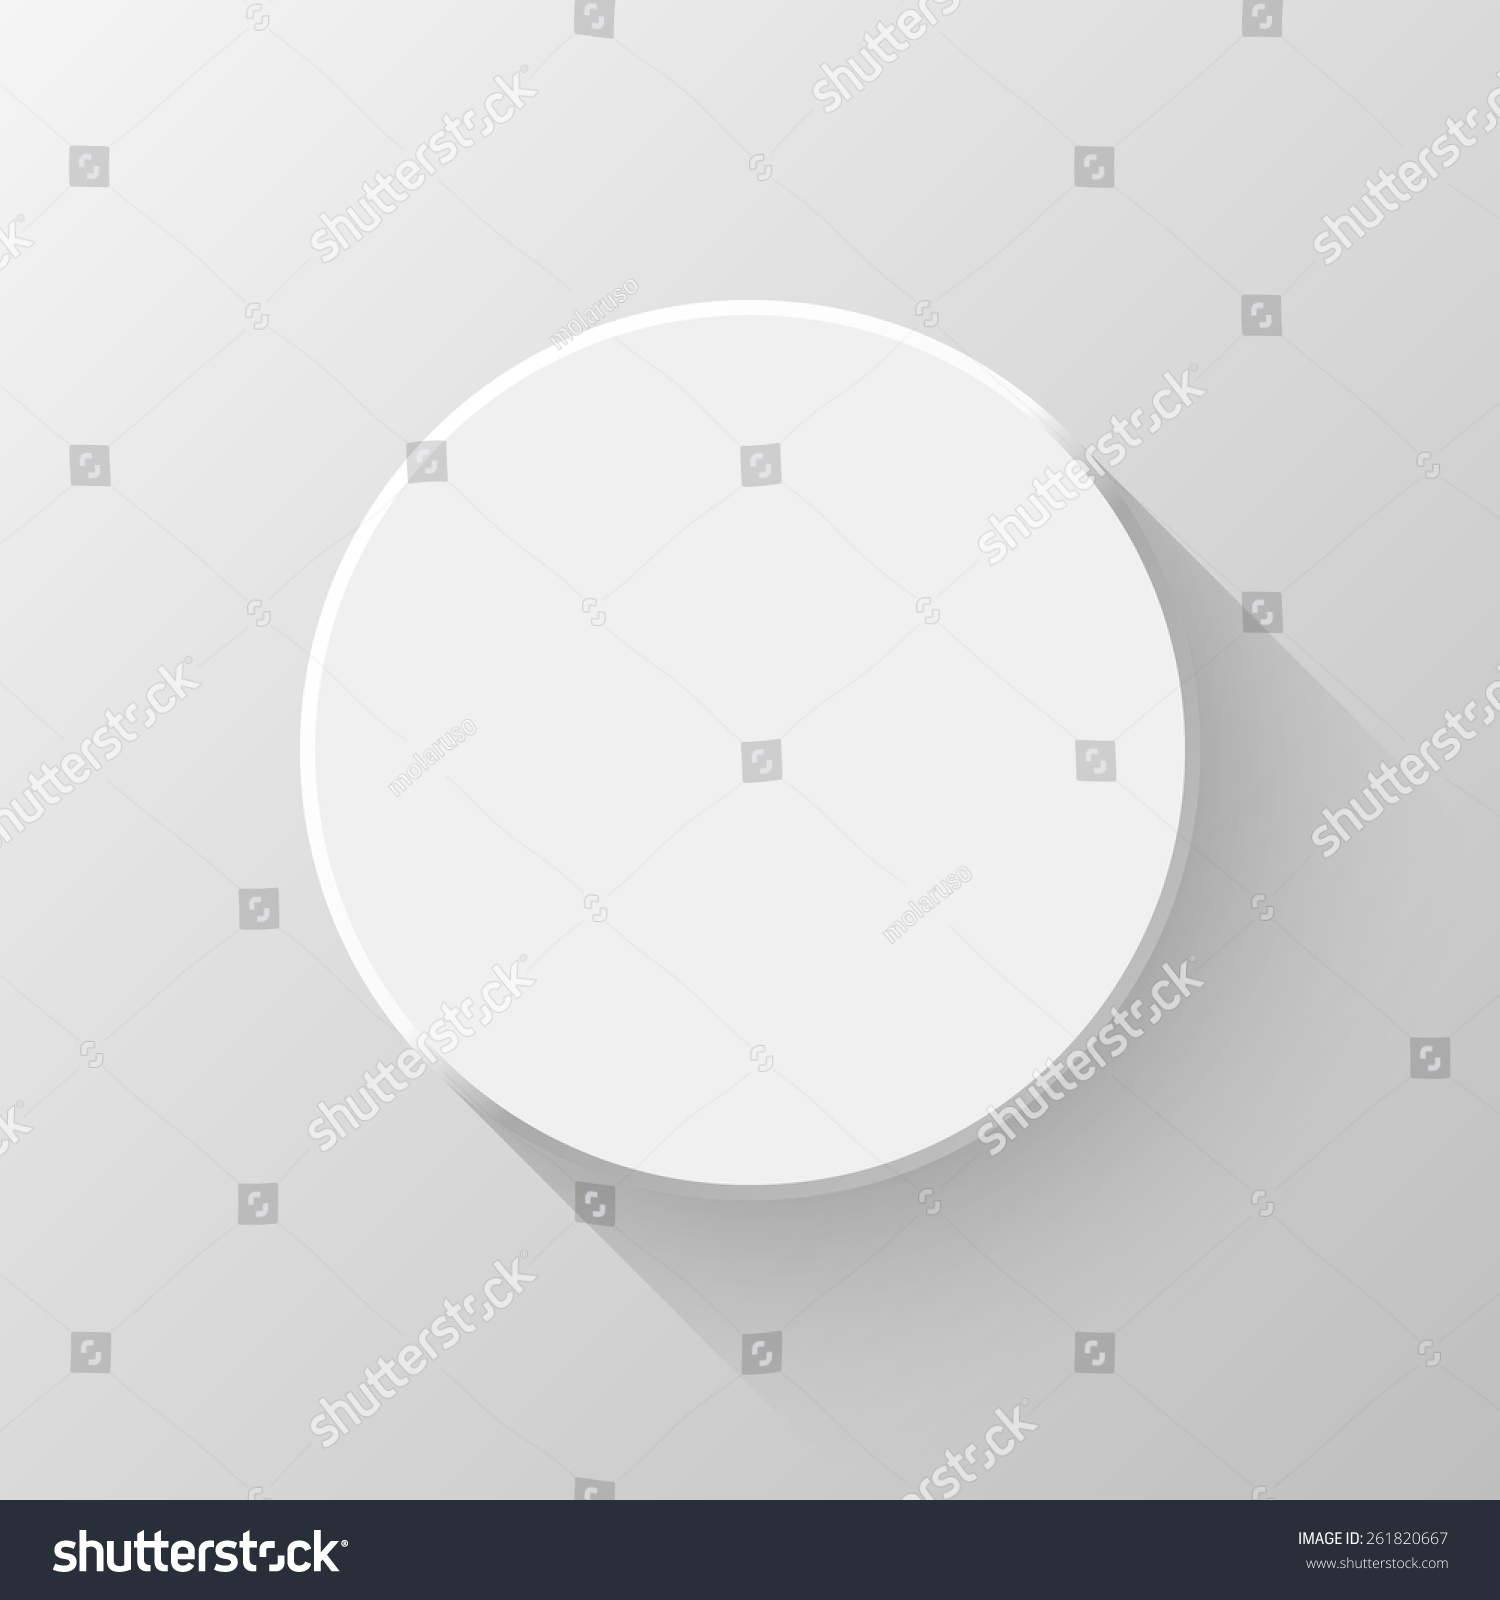 Circle badge template template for designing artwork for badge a badge a minit template choice image template design ideas maxwellsz